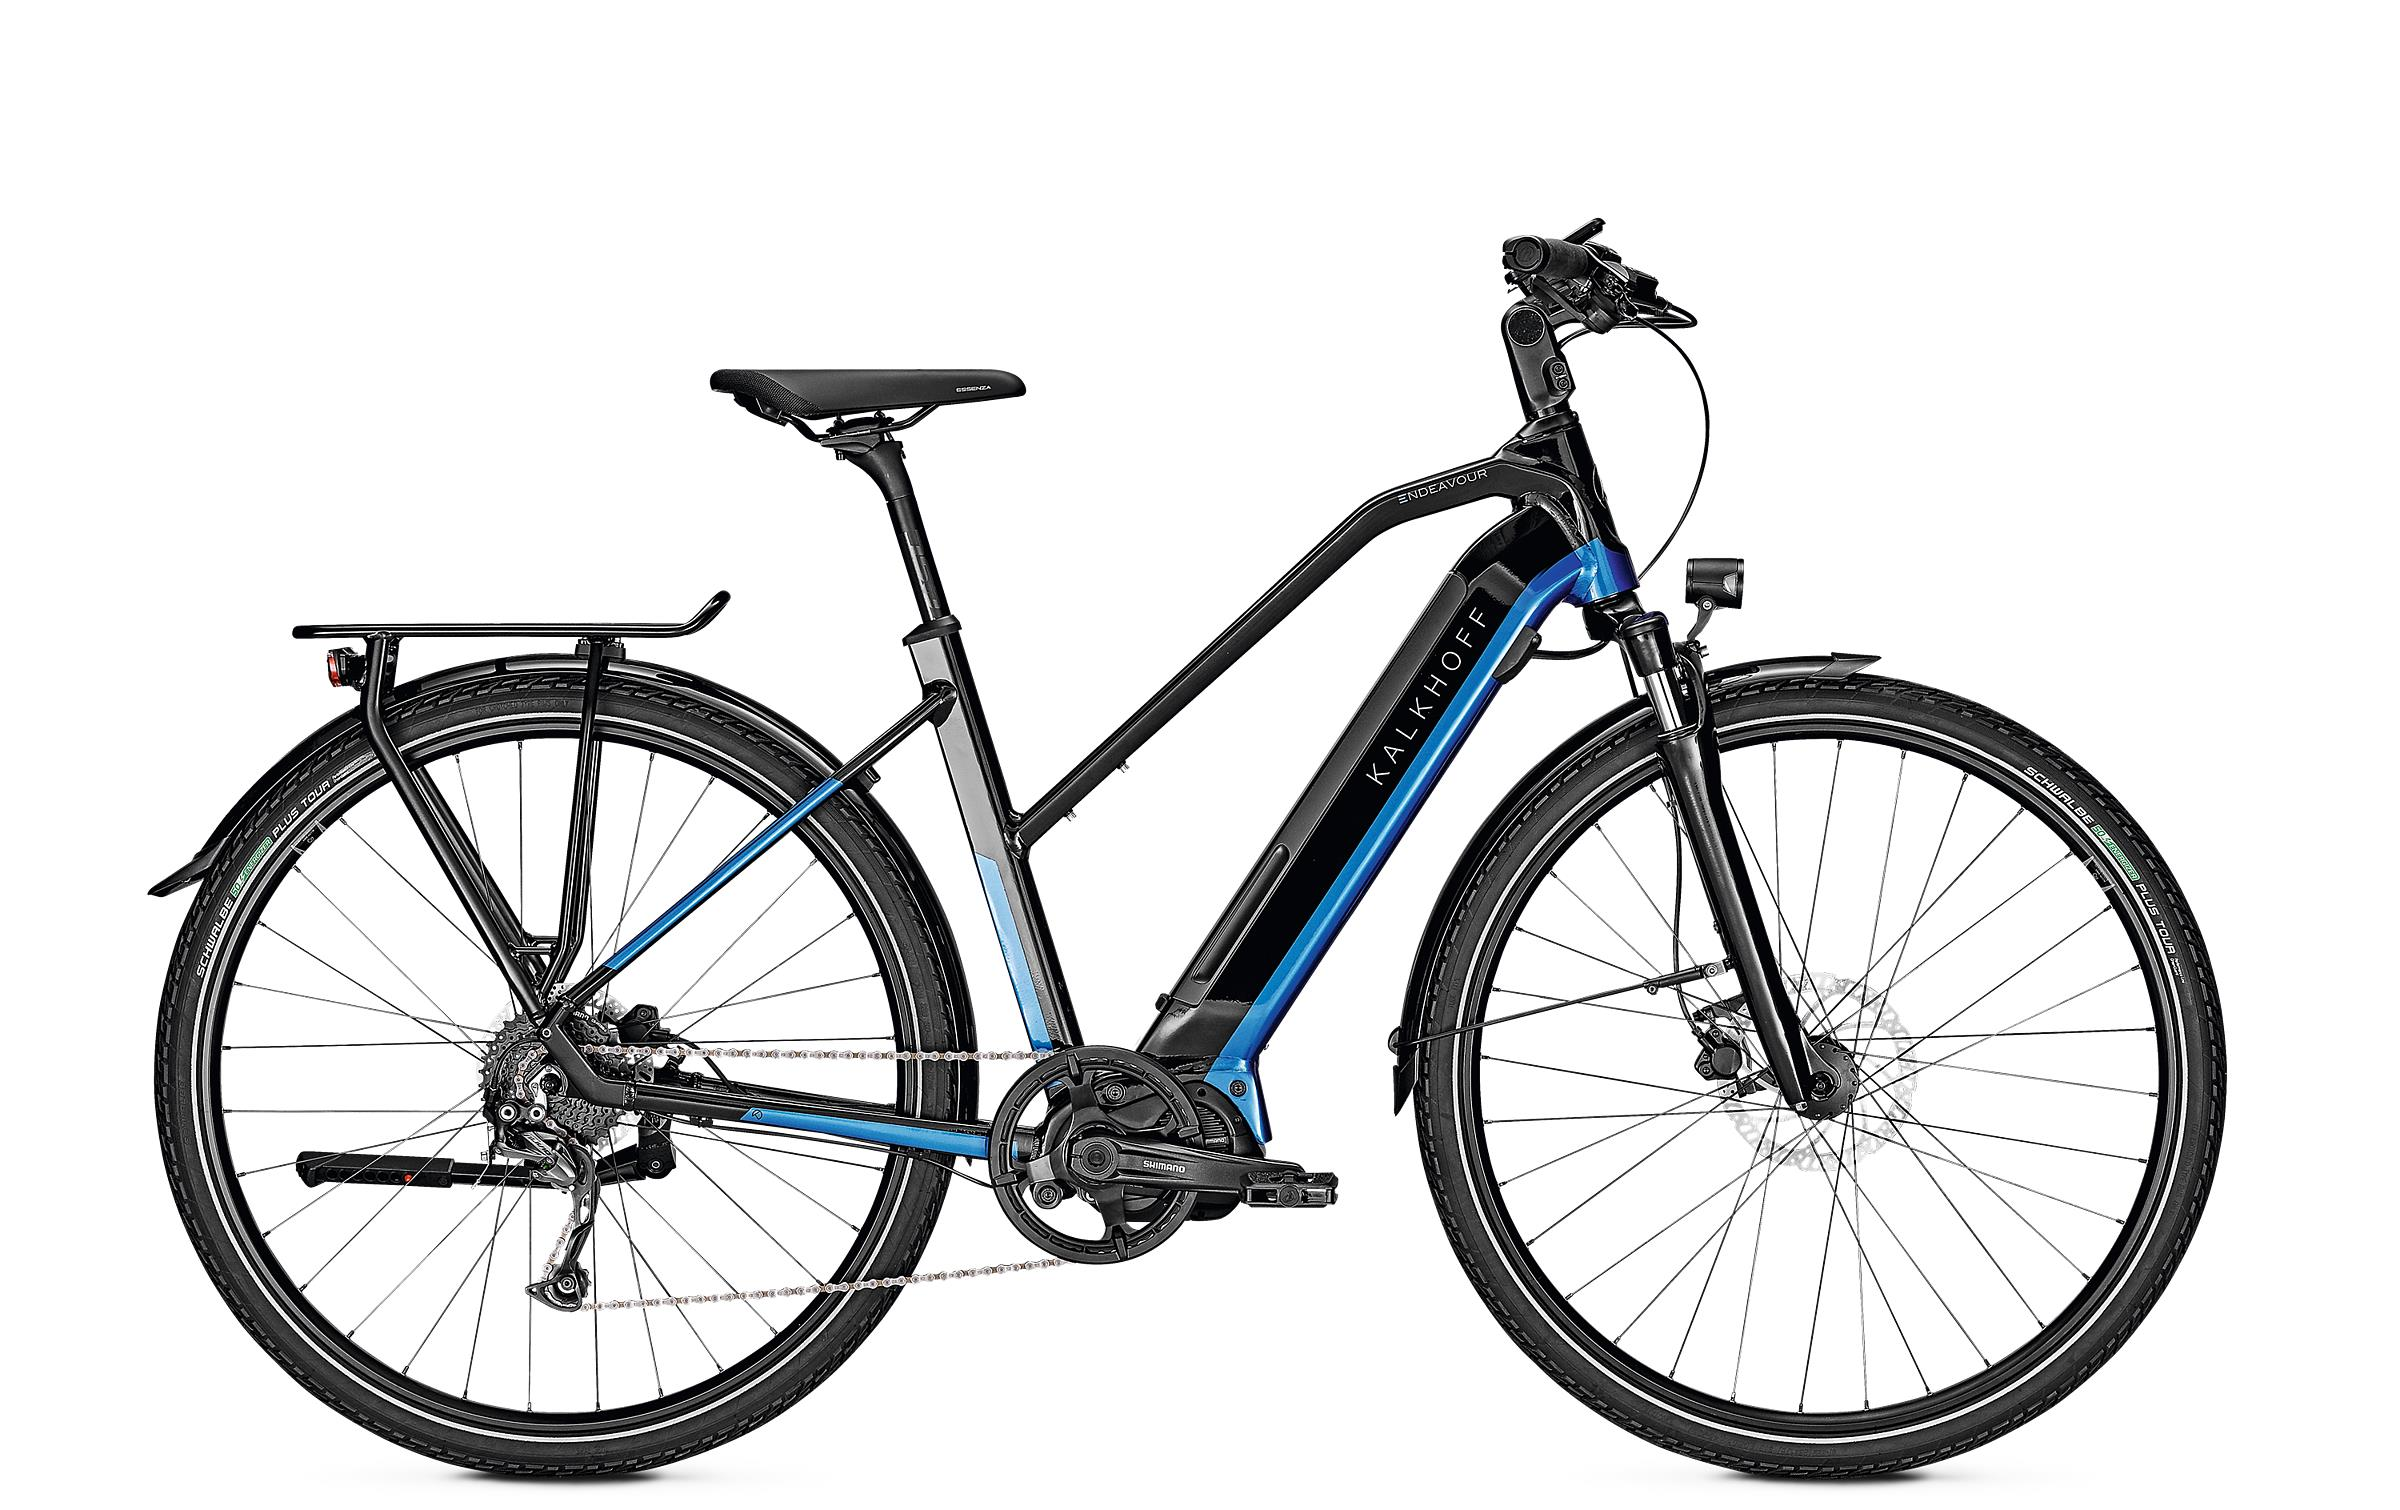 Kalkhoff ENDEAVOUR 5.S MOVE - 28 Trapez 540 Wh -  magicblack/pacificblue glossy 2019